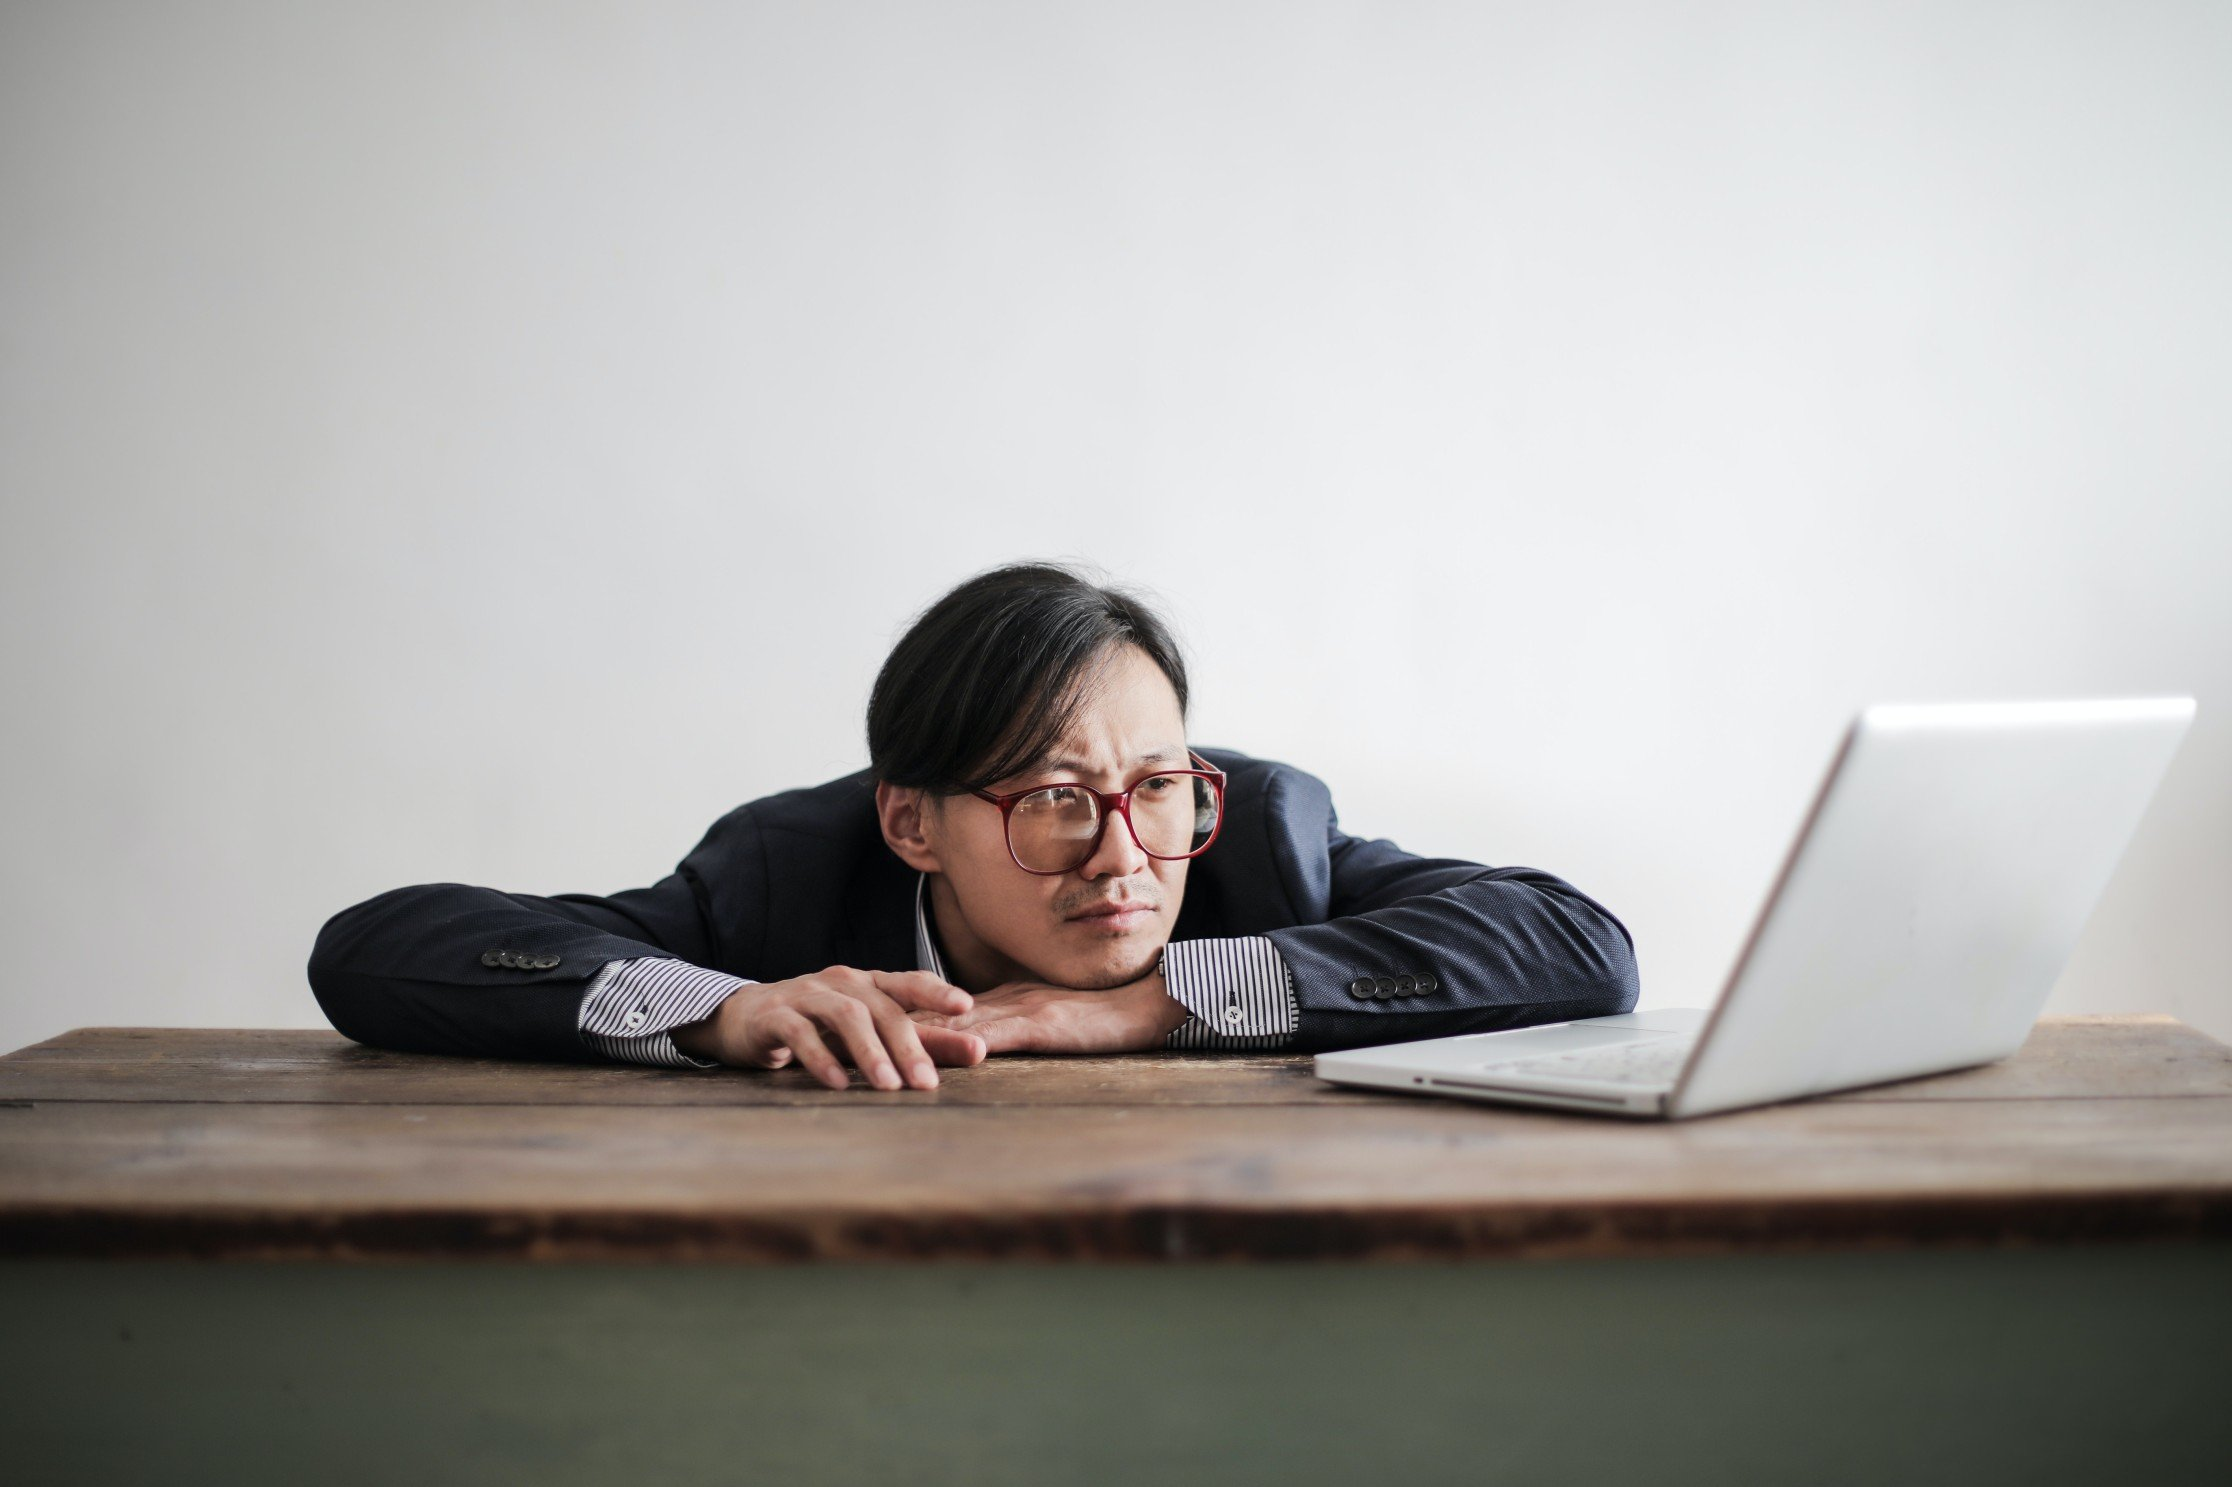 A remote worker that has suffered the adverse effects of micromanaging